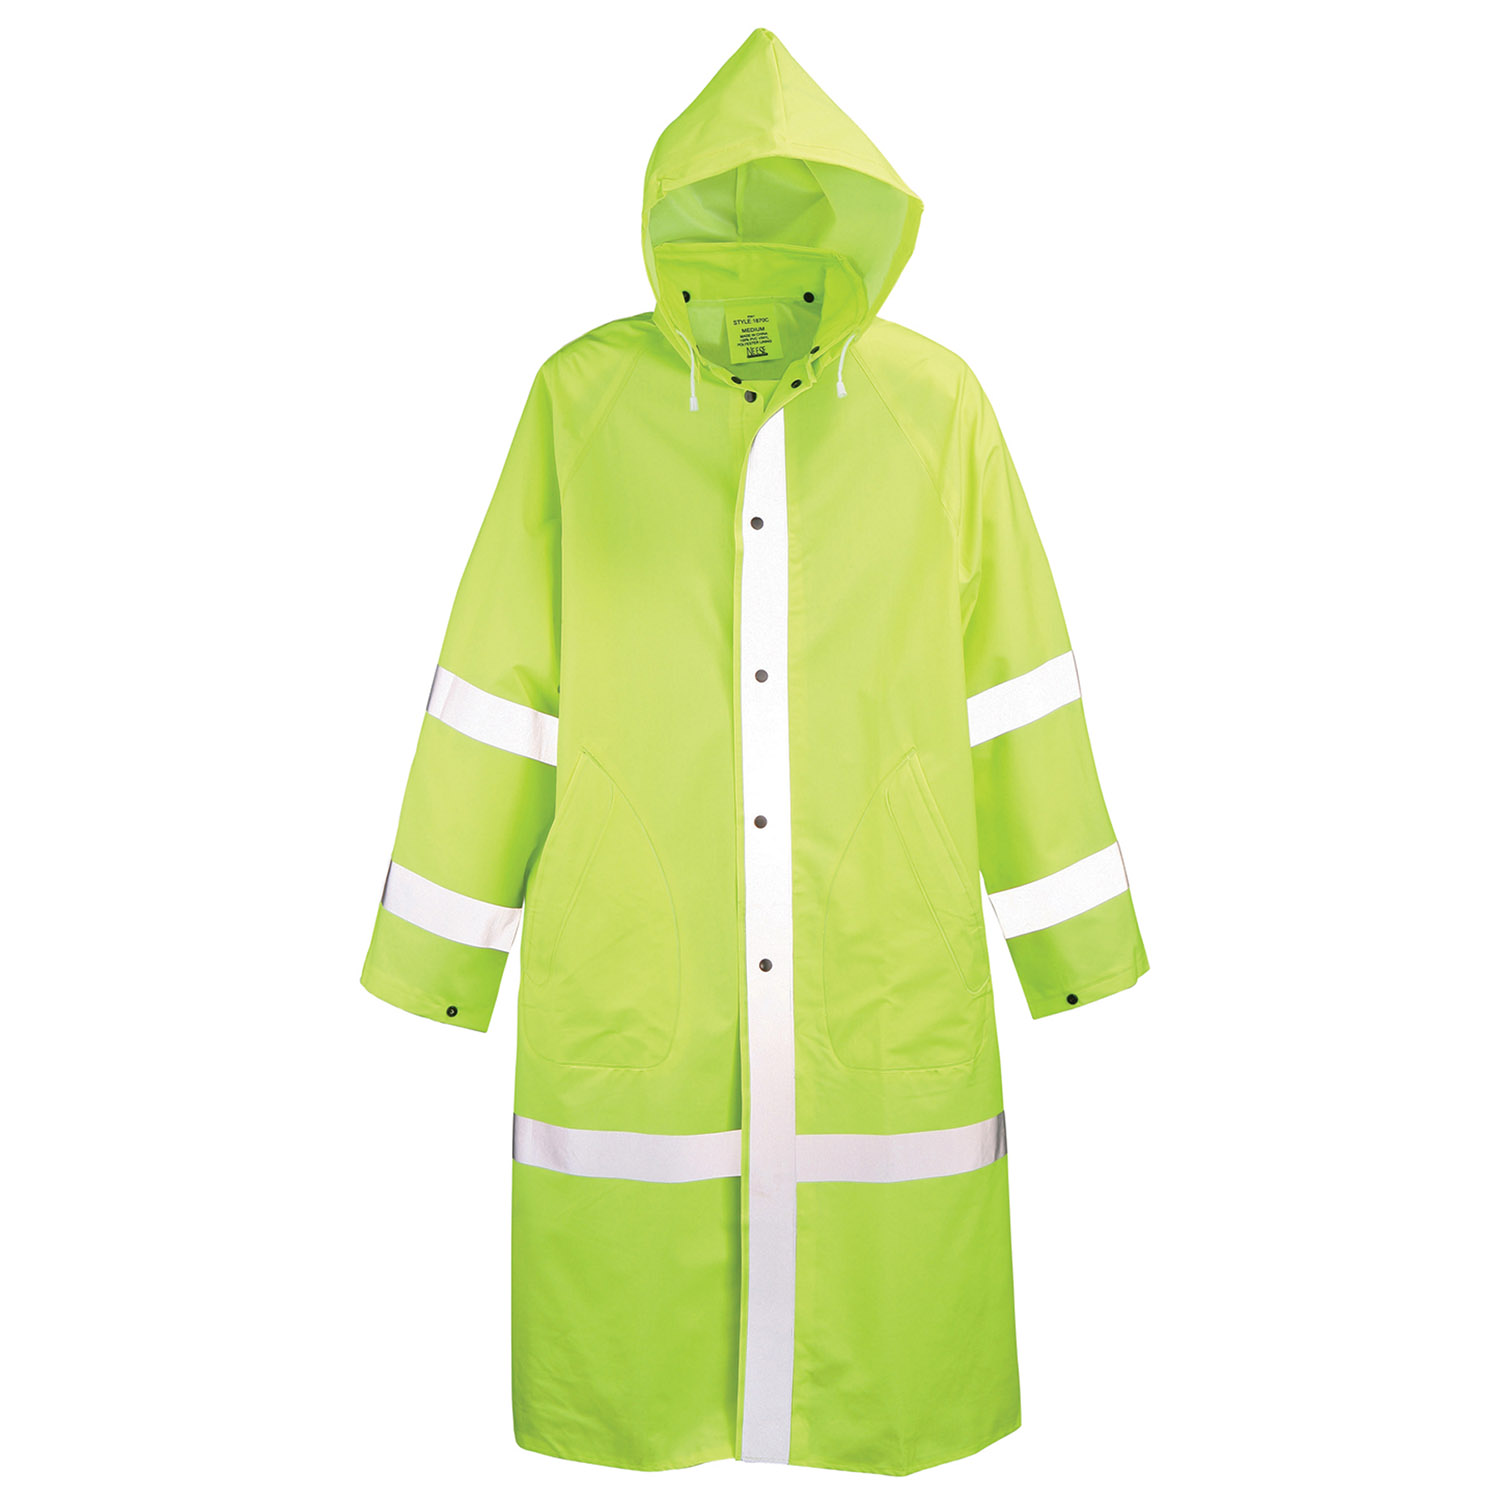 "Neese Lime Green 48"" PVC Vinyl Raincoat with Reflective"